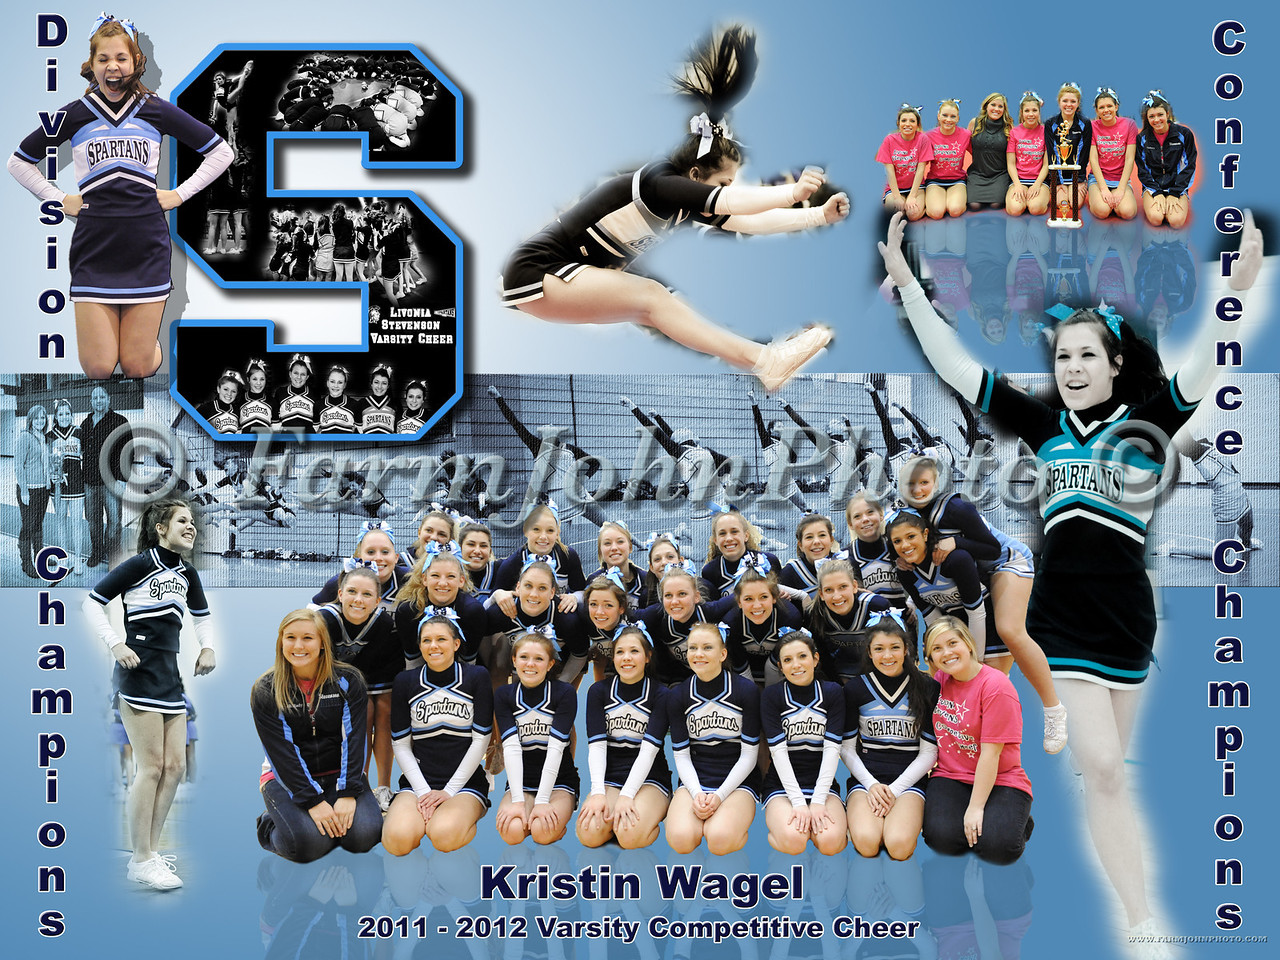 Kristin Wagel 24 x 18 Format Proof 6